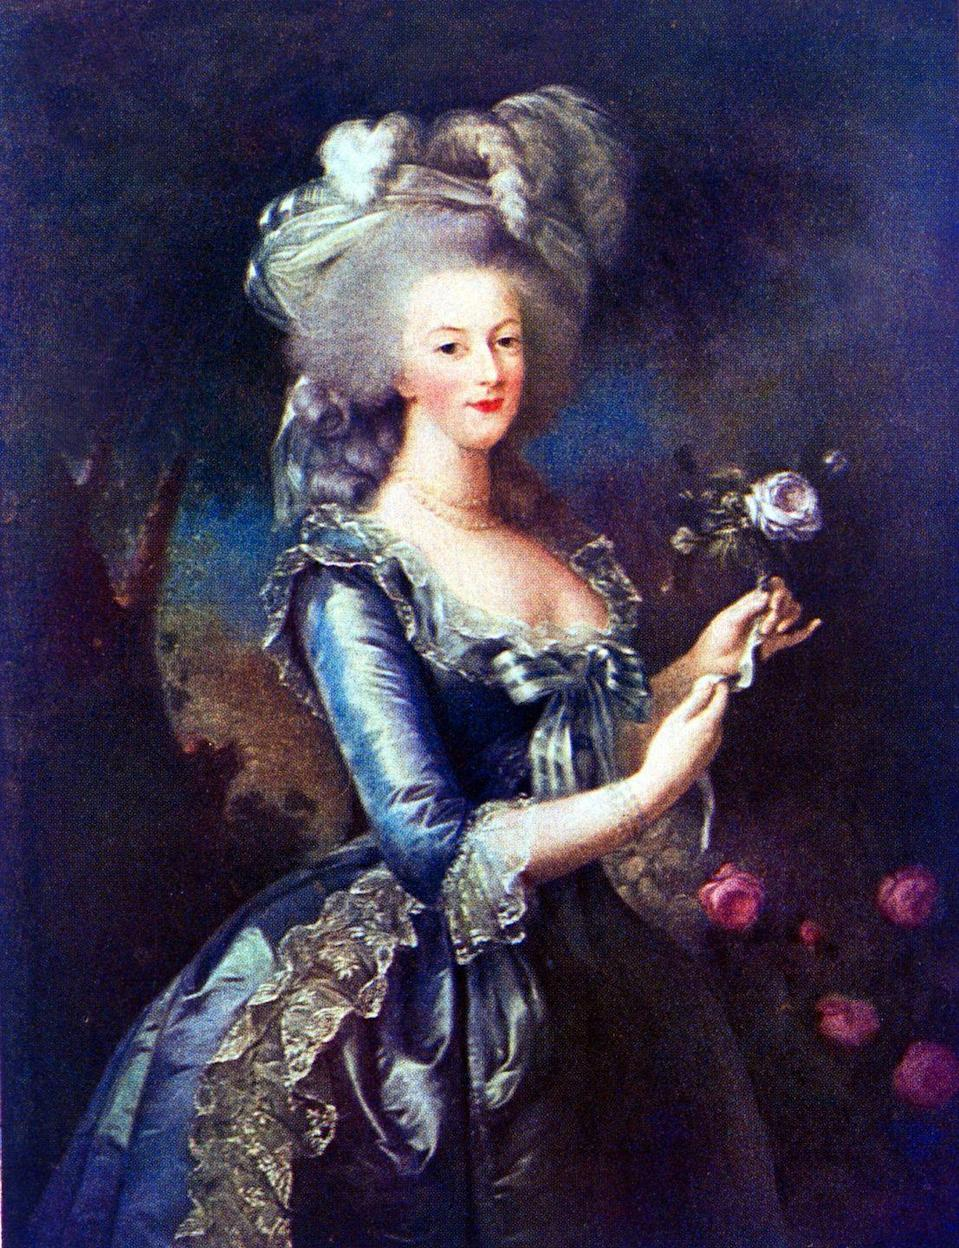 """<p>When Louis XVI married 14-year-old Marie Antoinette, he didn't even do so in person. According to <a href=""""https://www.history.com/news/royal-weddings-gone-bad"""" rel=""""nofollow noopener"""" target=""""_blank"""" data-ylk=""""slk:History"""" class=""""link rapid-noclick-resp""""><em>History</em></a>, the nuptials """"took place by proxy in the bride's native Vienna; her older brother Ferdinand stood in as the groom at the altar."""" Not your usual royal wedding. And per History, """"In what was seen as a bad omen at the time, his wife let a large blot of ink fall onto the marriage contract, covering half her name.""""</p>"""